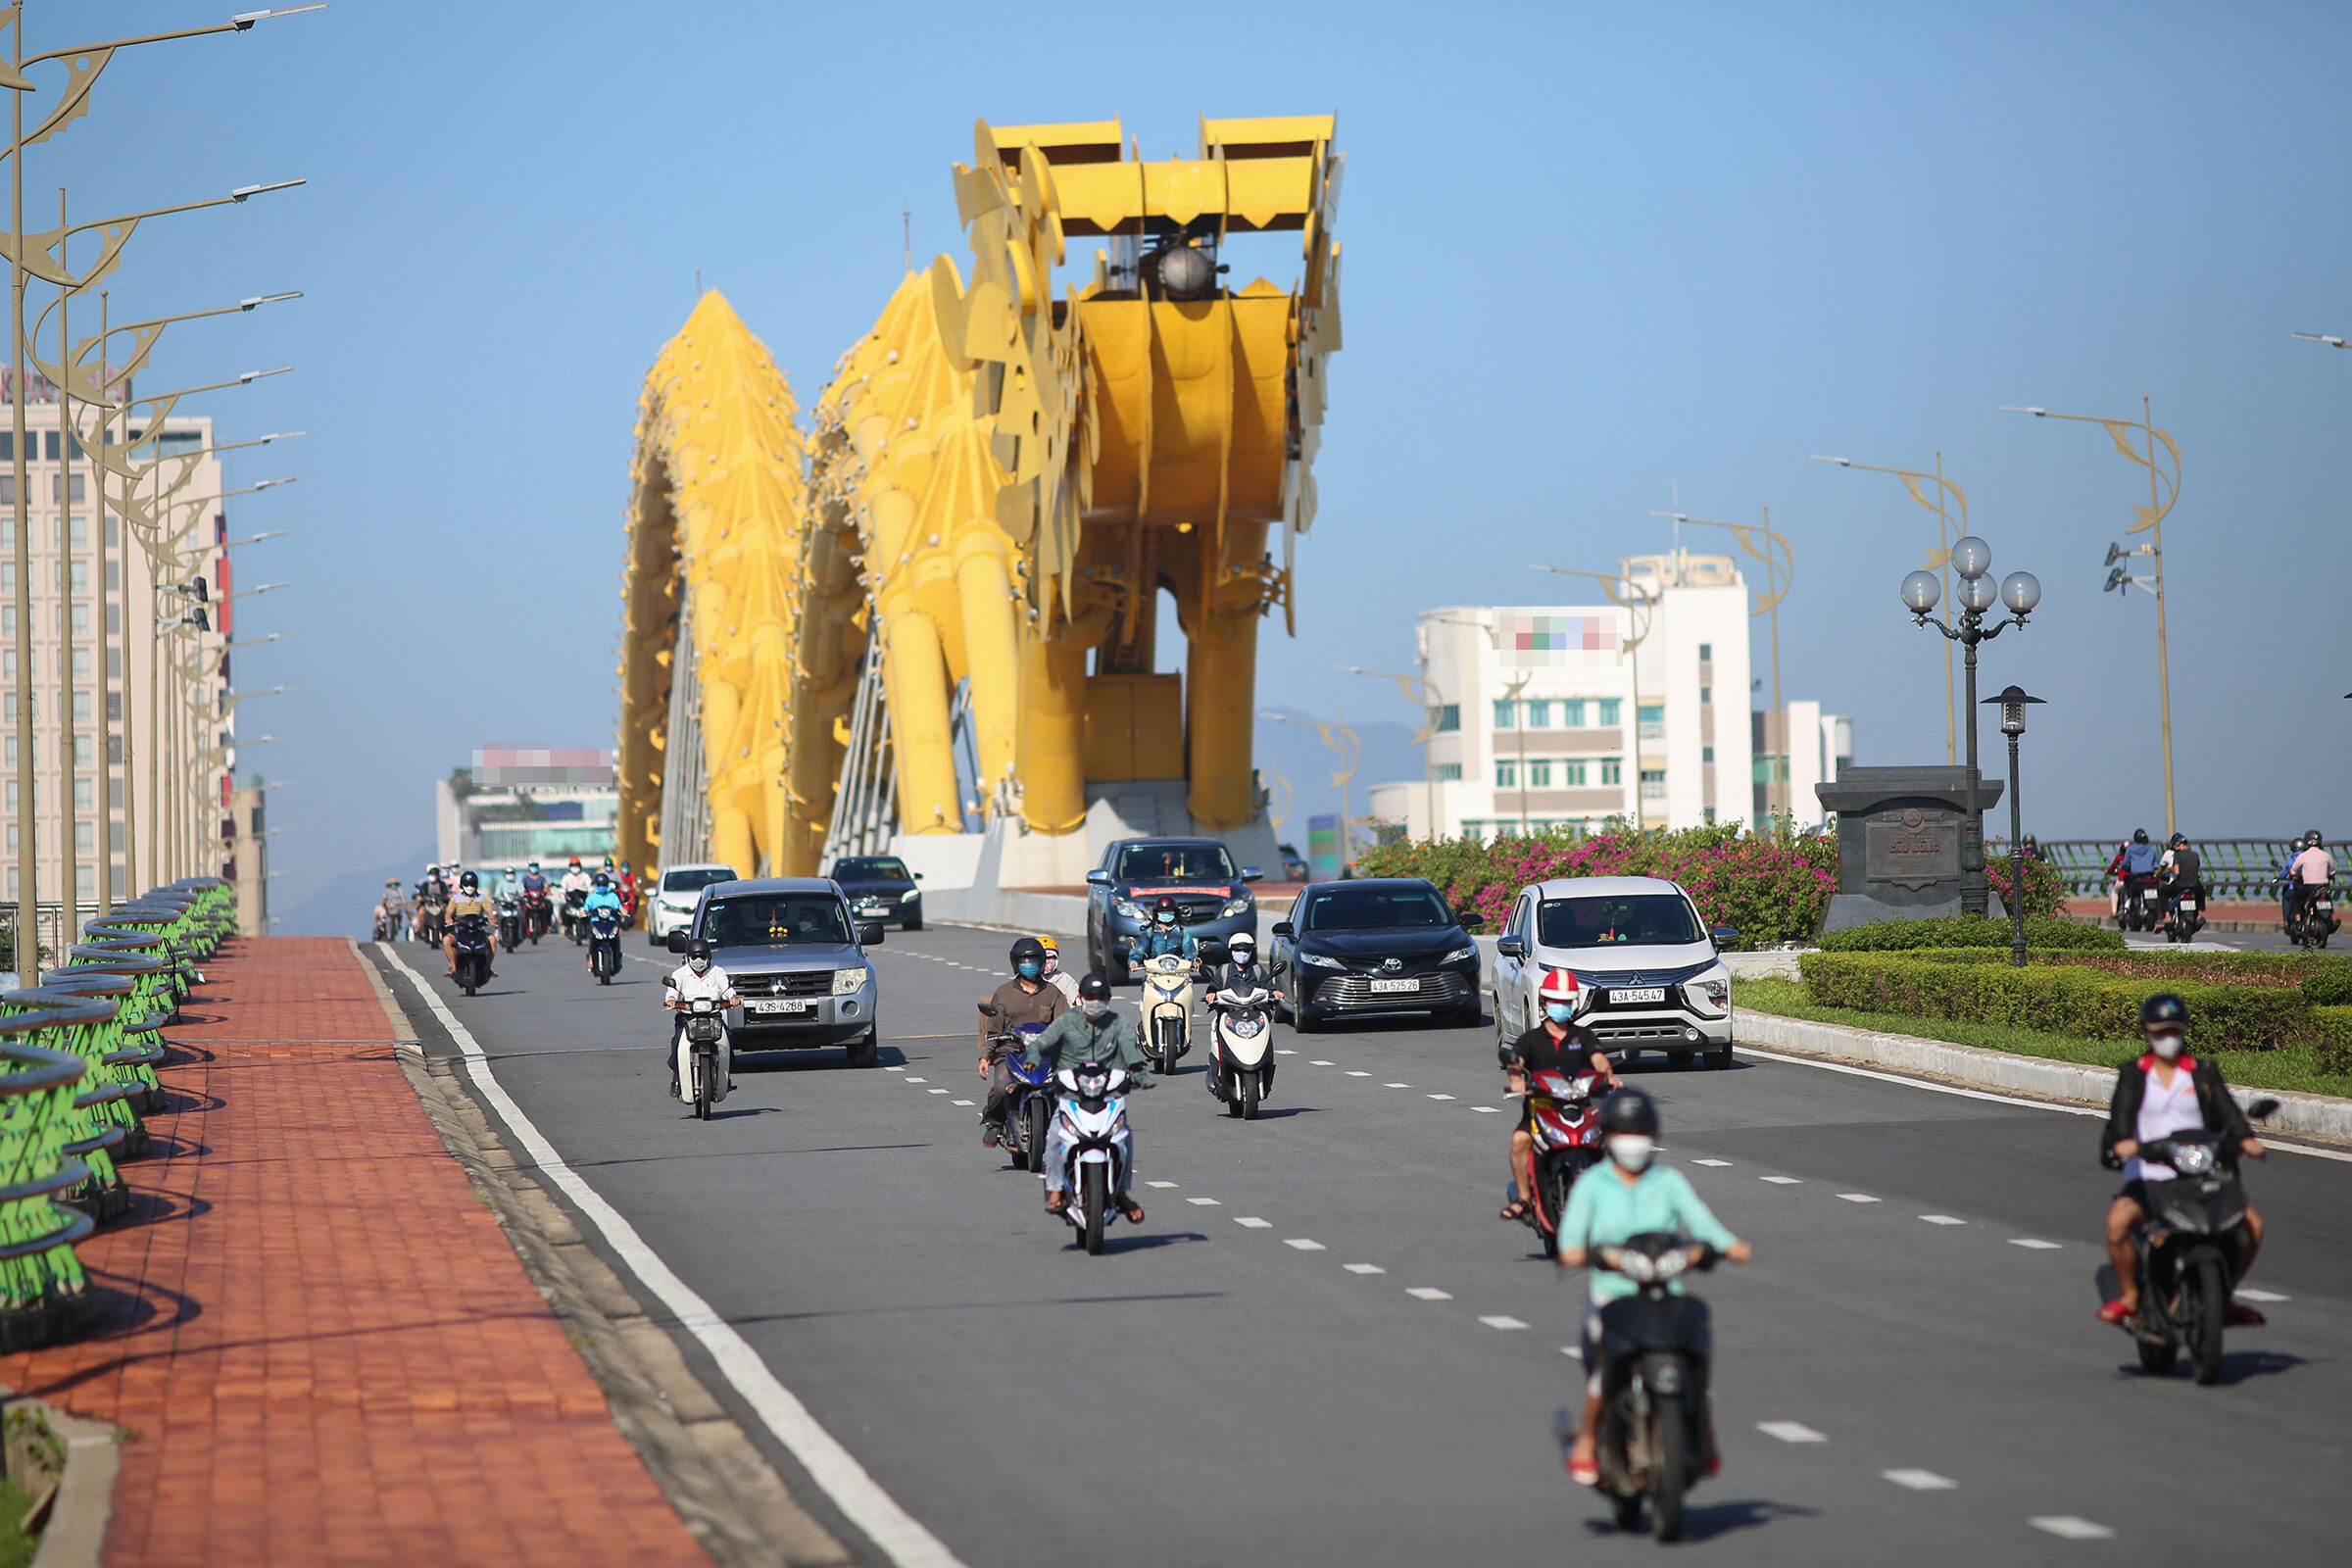 Rong Bridge sees more vehicles after checkpoints and barriers are removed.